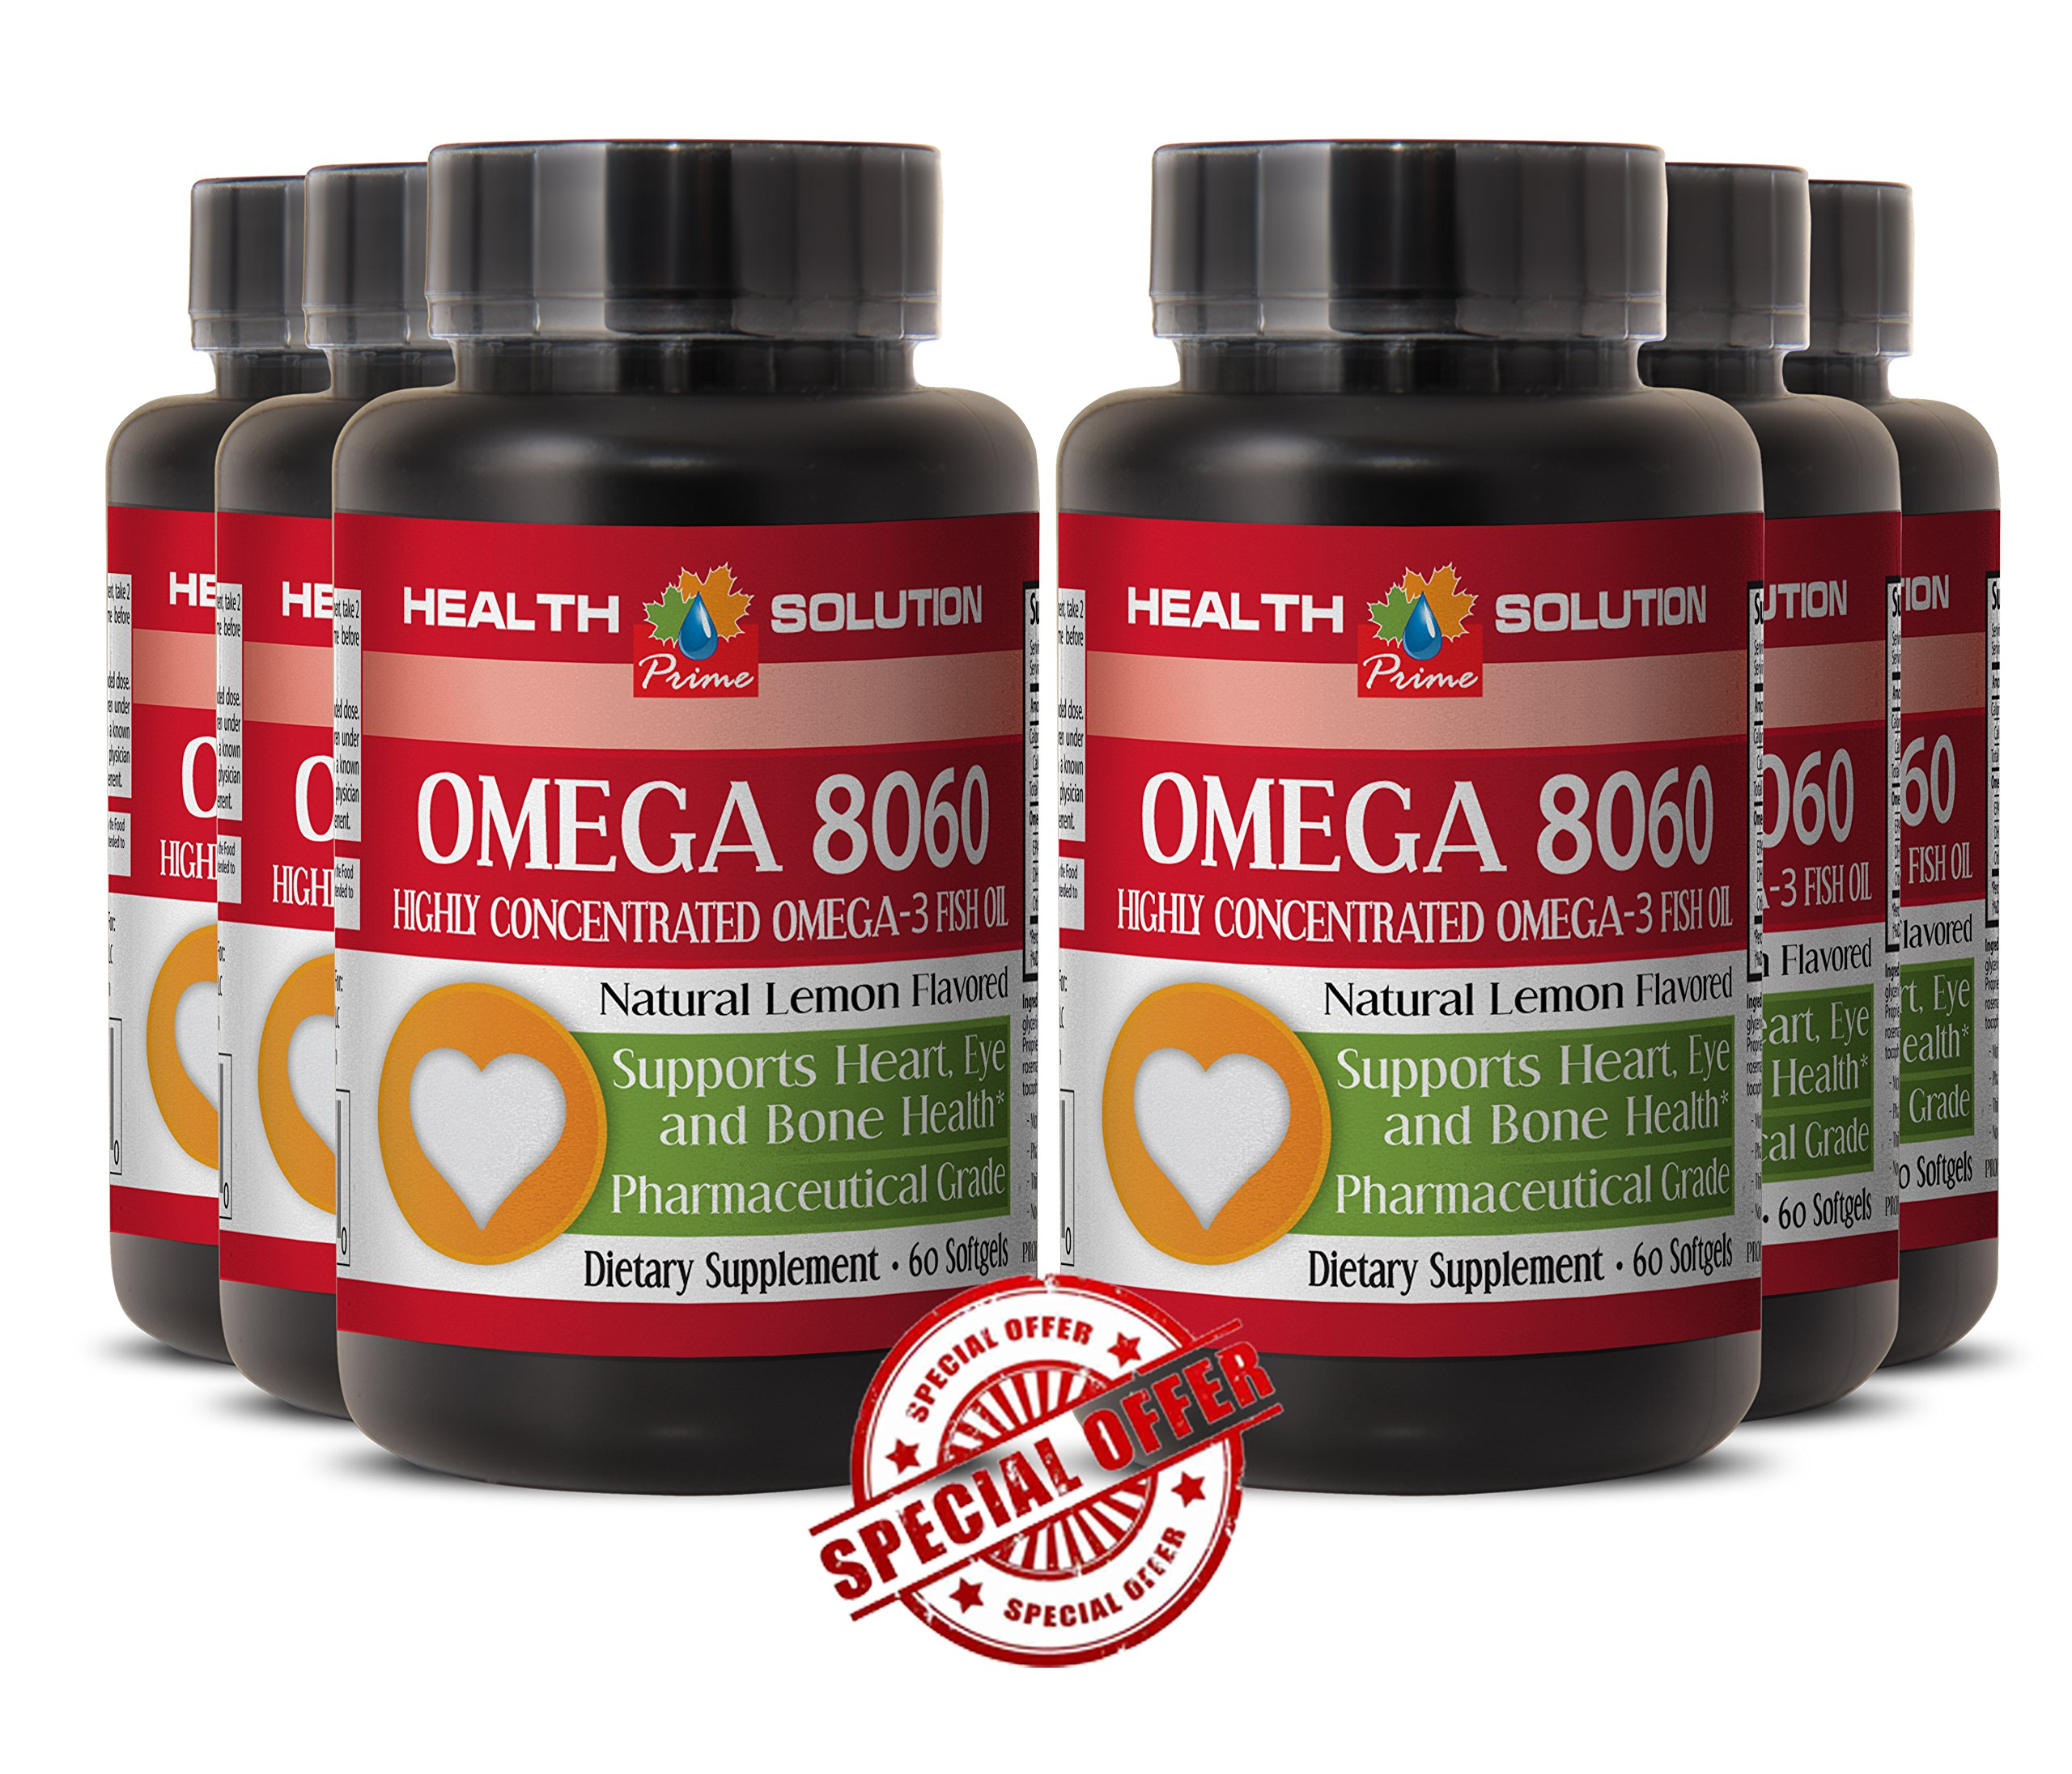 Omega 6 cla - OMEGA 8060 OMEGA-3 FATTY ACIDS - immune system support (6 Bottles) by Health Solution Prime